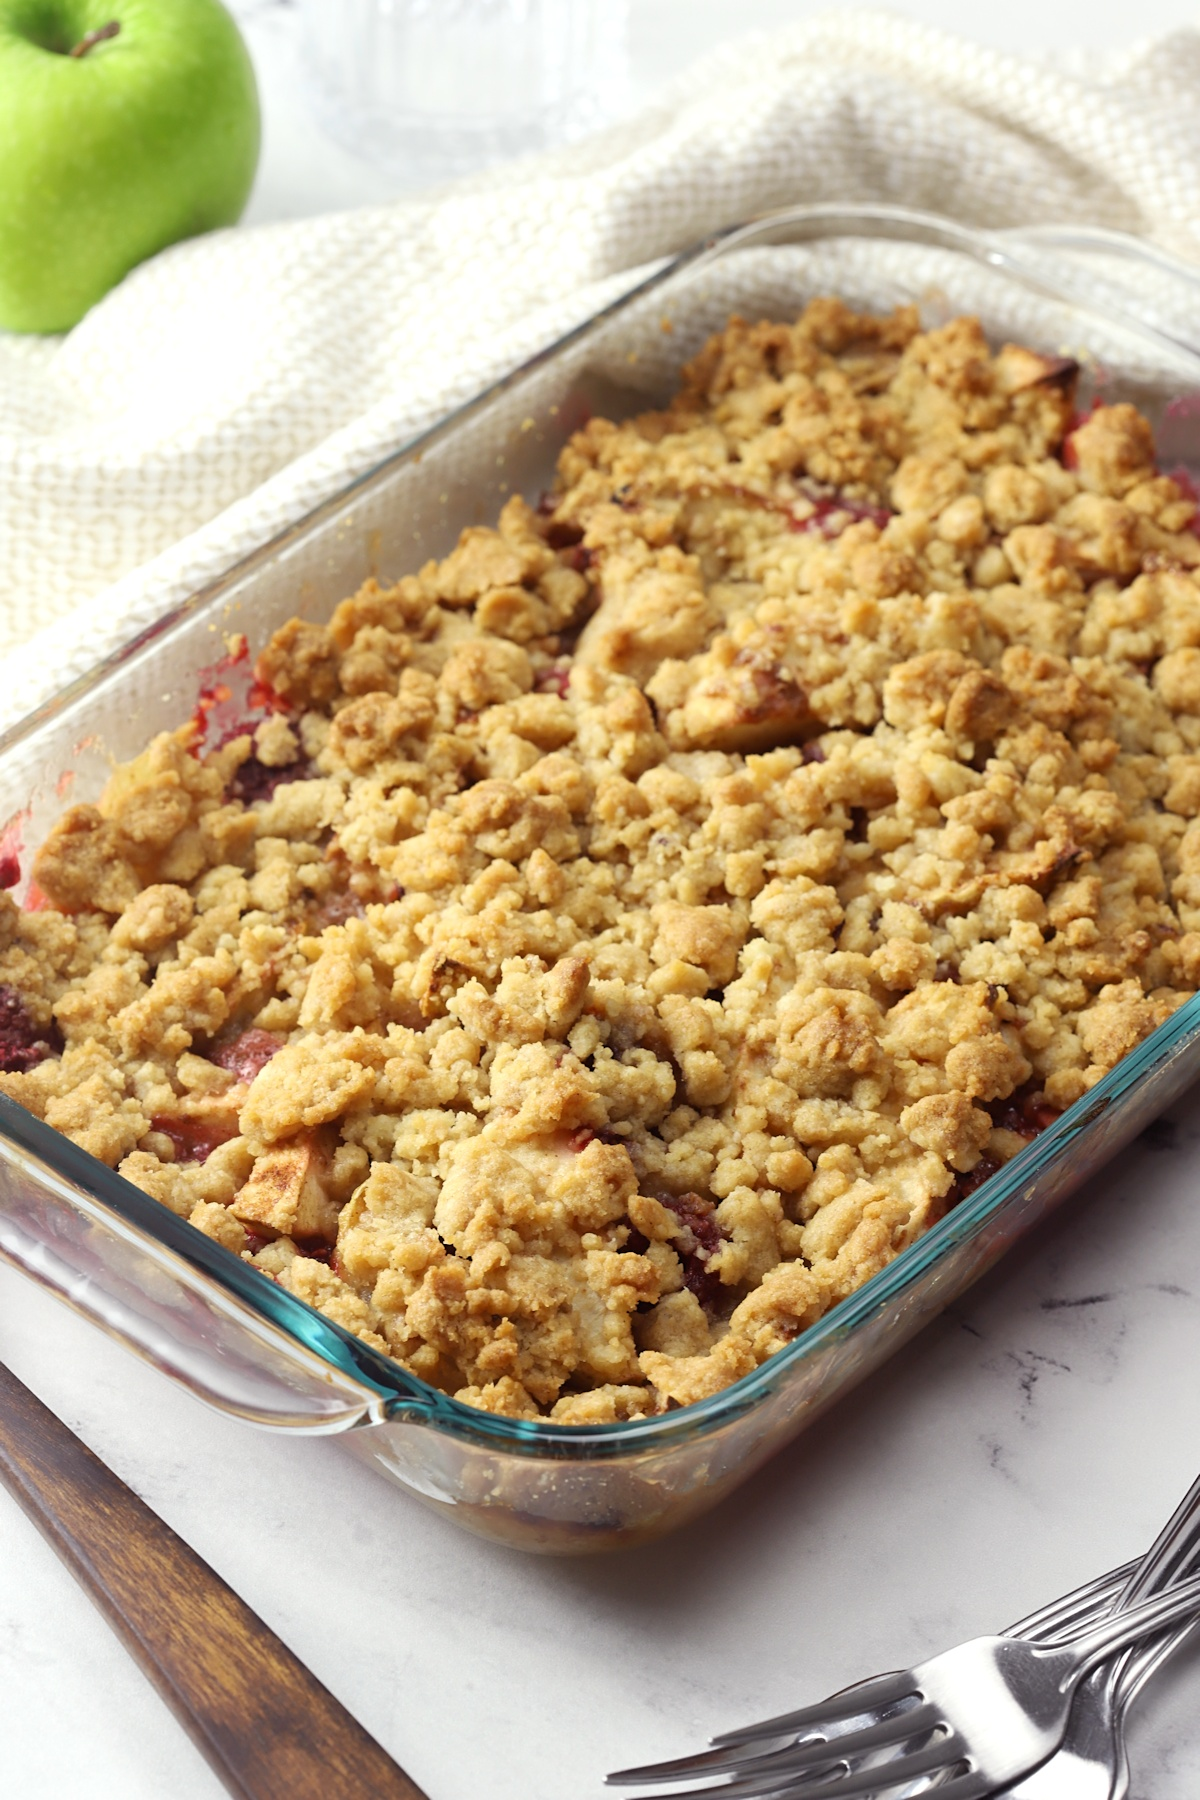 Glass casserole dish filled with baked apple raspberry crumble.